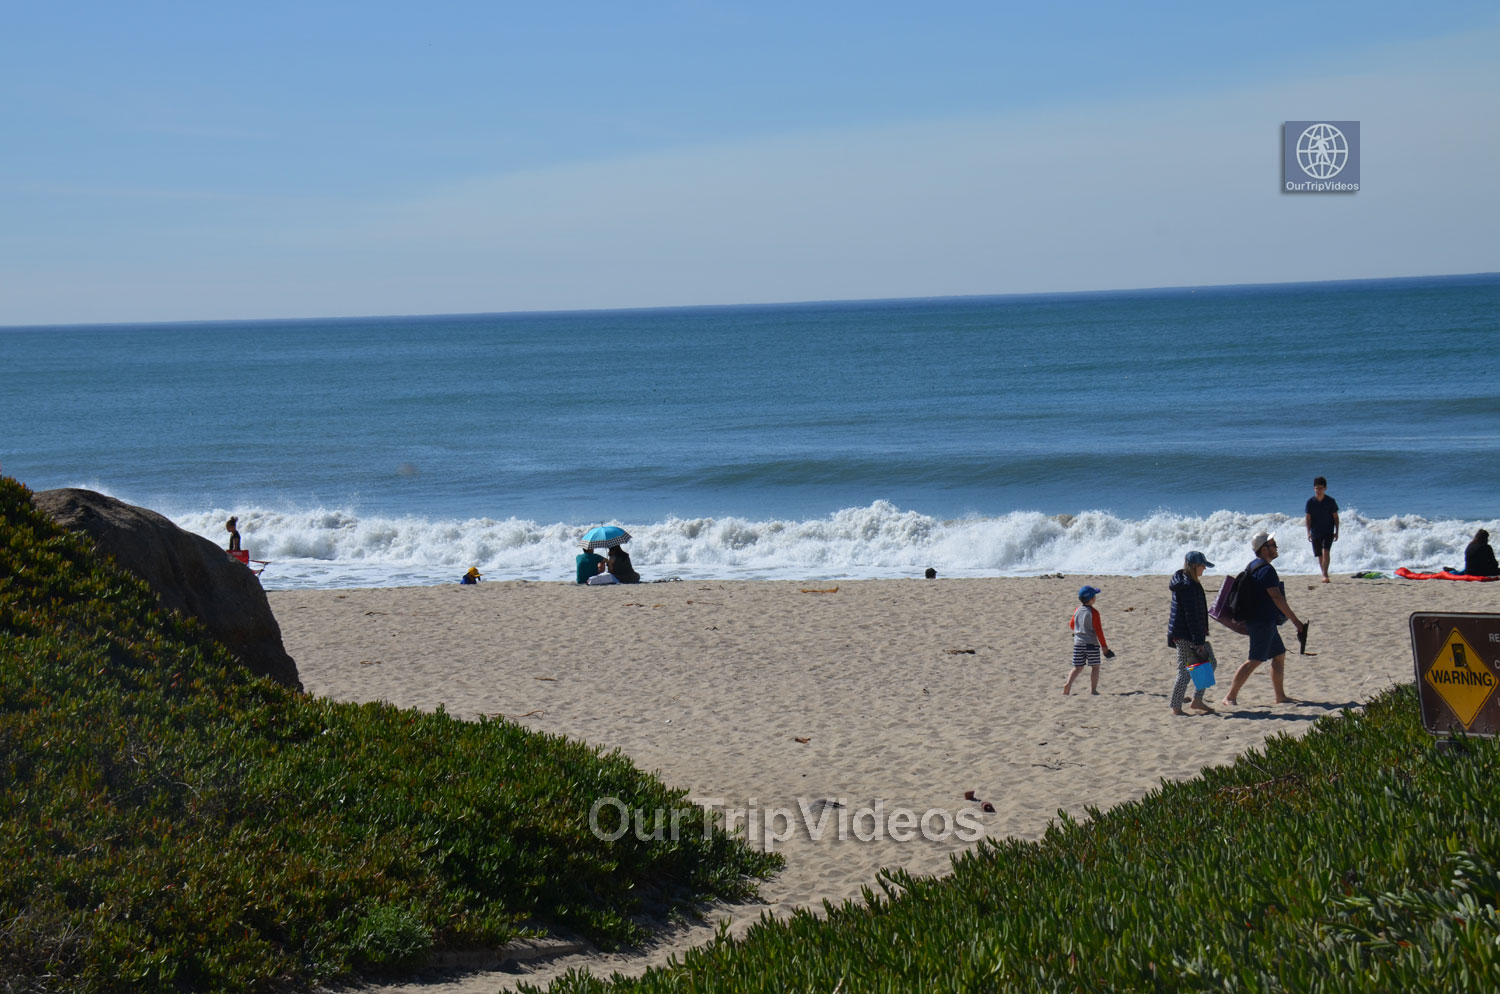 State Beach(Francis Beach), Half Moon Bay, CA, USA - Picture 23 of 25